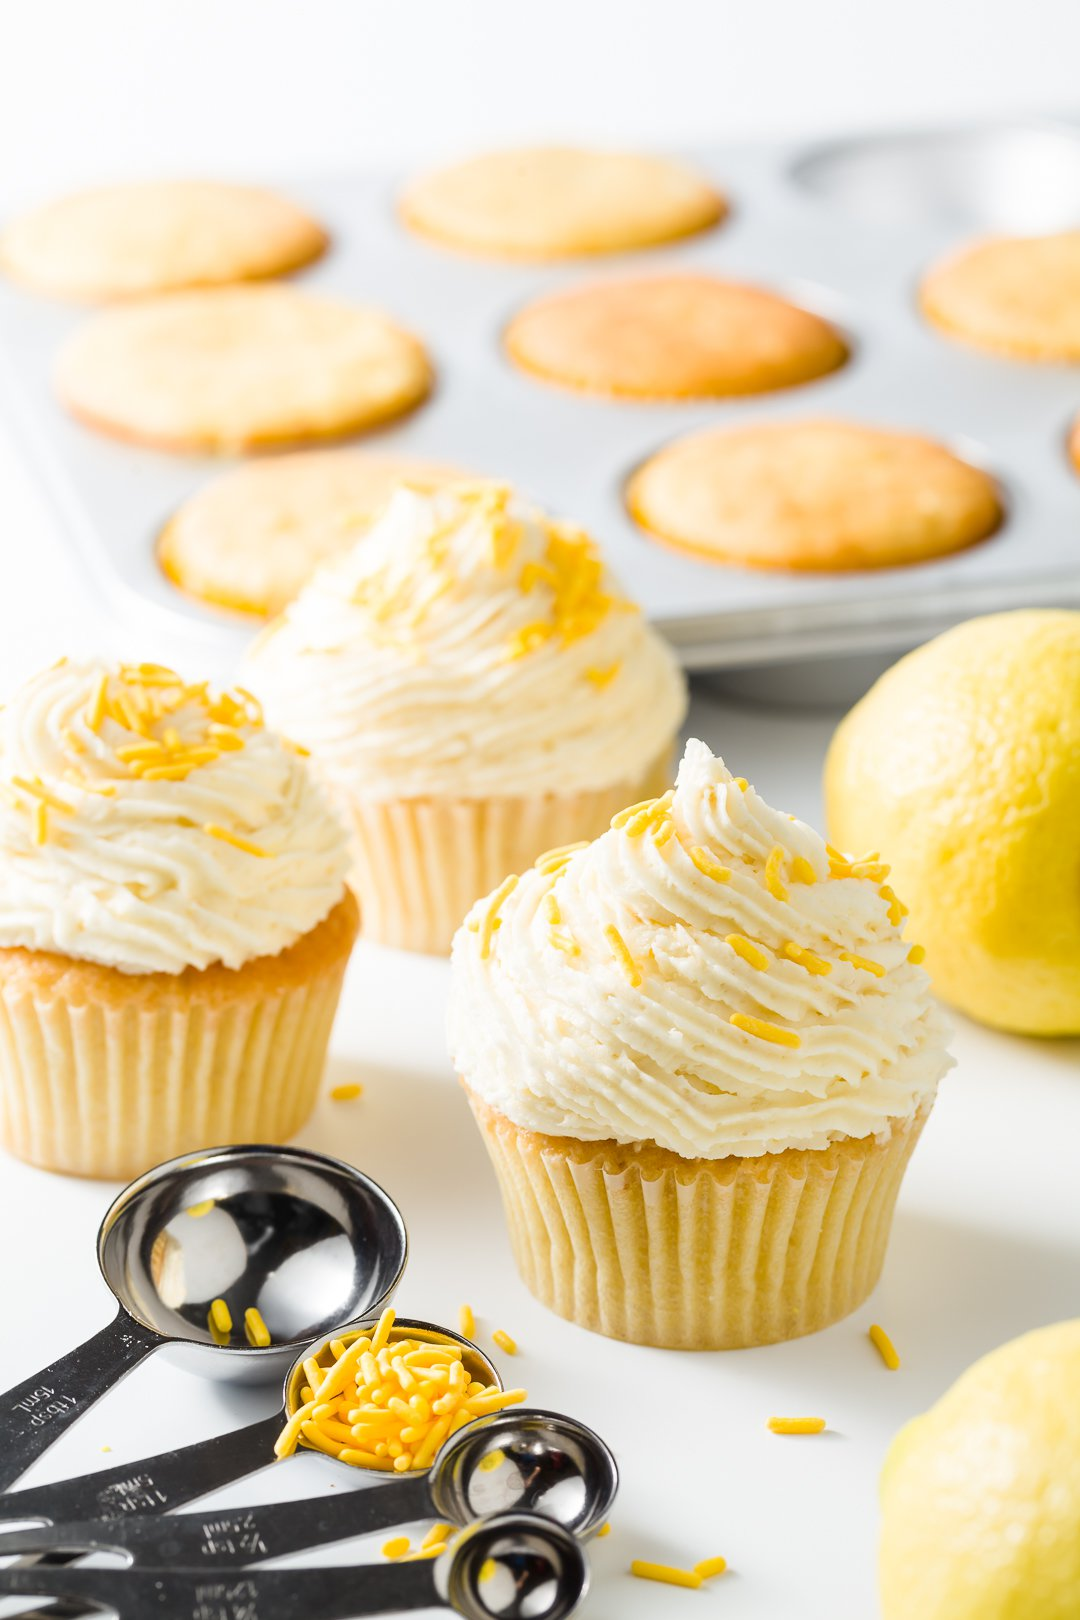 Lemon Cupcakes with Lemon Frosting